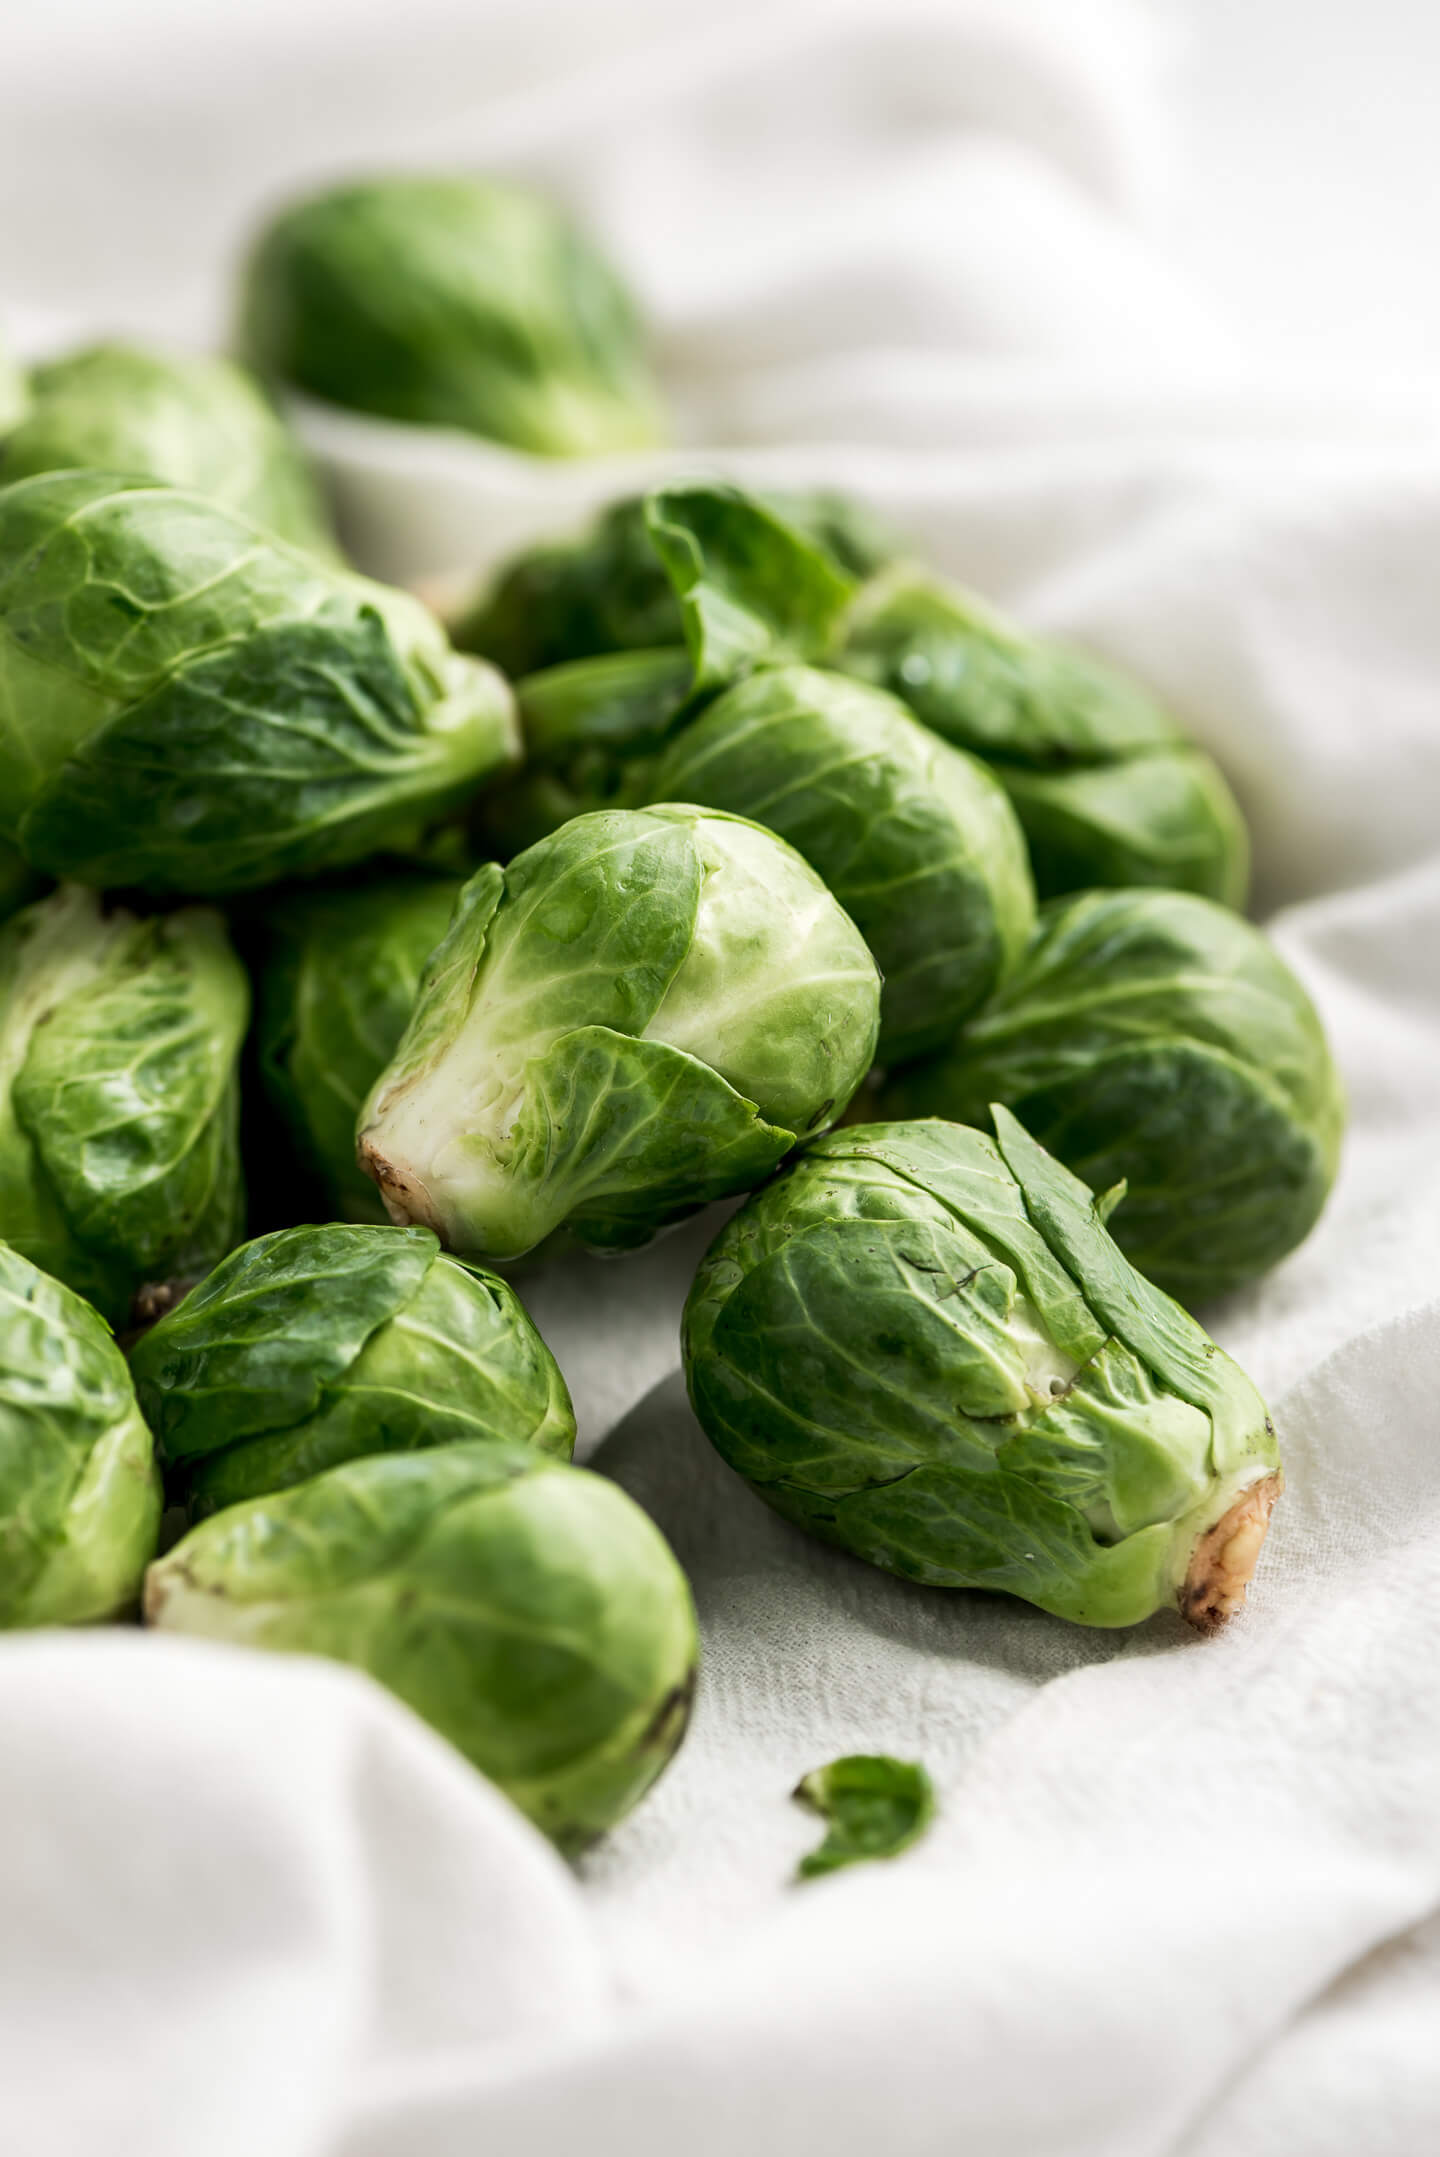 Raw brussels sprouts on a white tea towel.